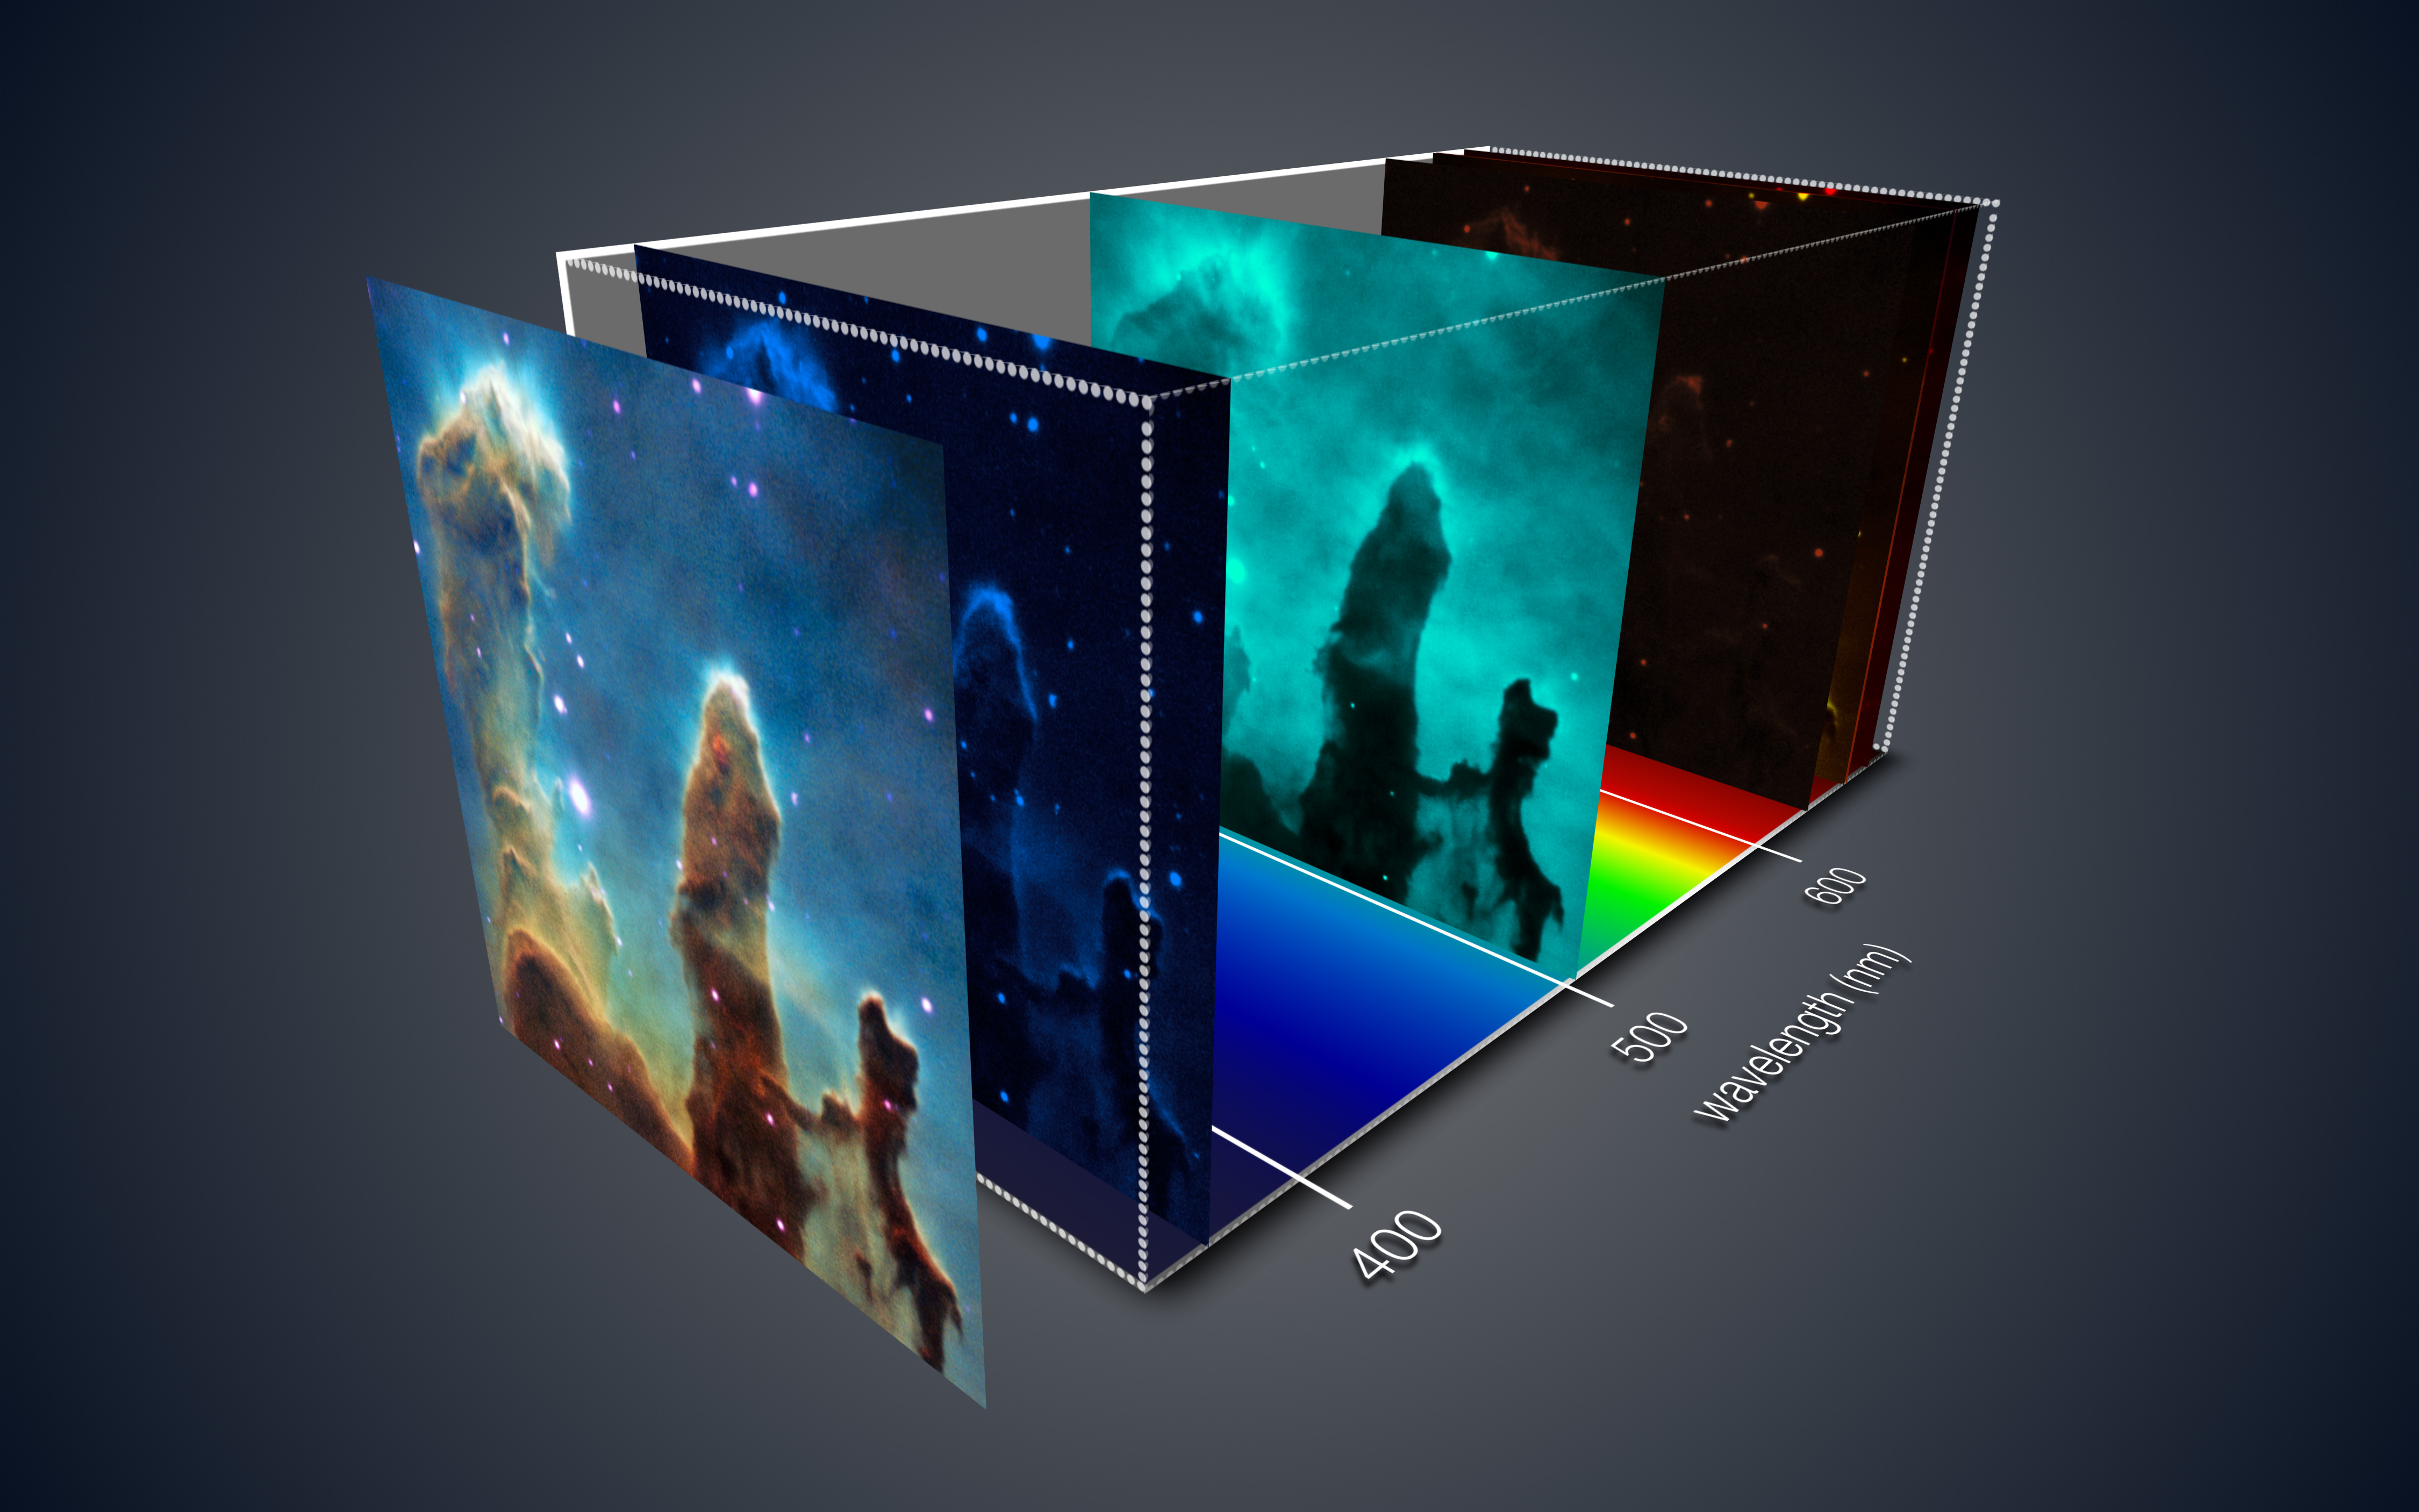 This view shows how the MUSE instrument on ESO's Very Large Telescope has created a three-dimensional view of the iconic Pillars of Creation in the star-forming region Messier 16. Each pixel in the data corresponds to a spectrum that reveals a host of information about the motions and physical conditions of the gas at that point. The slices of the data corresponding to some of the different chemical elements present are highlighted. Credit: ESO